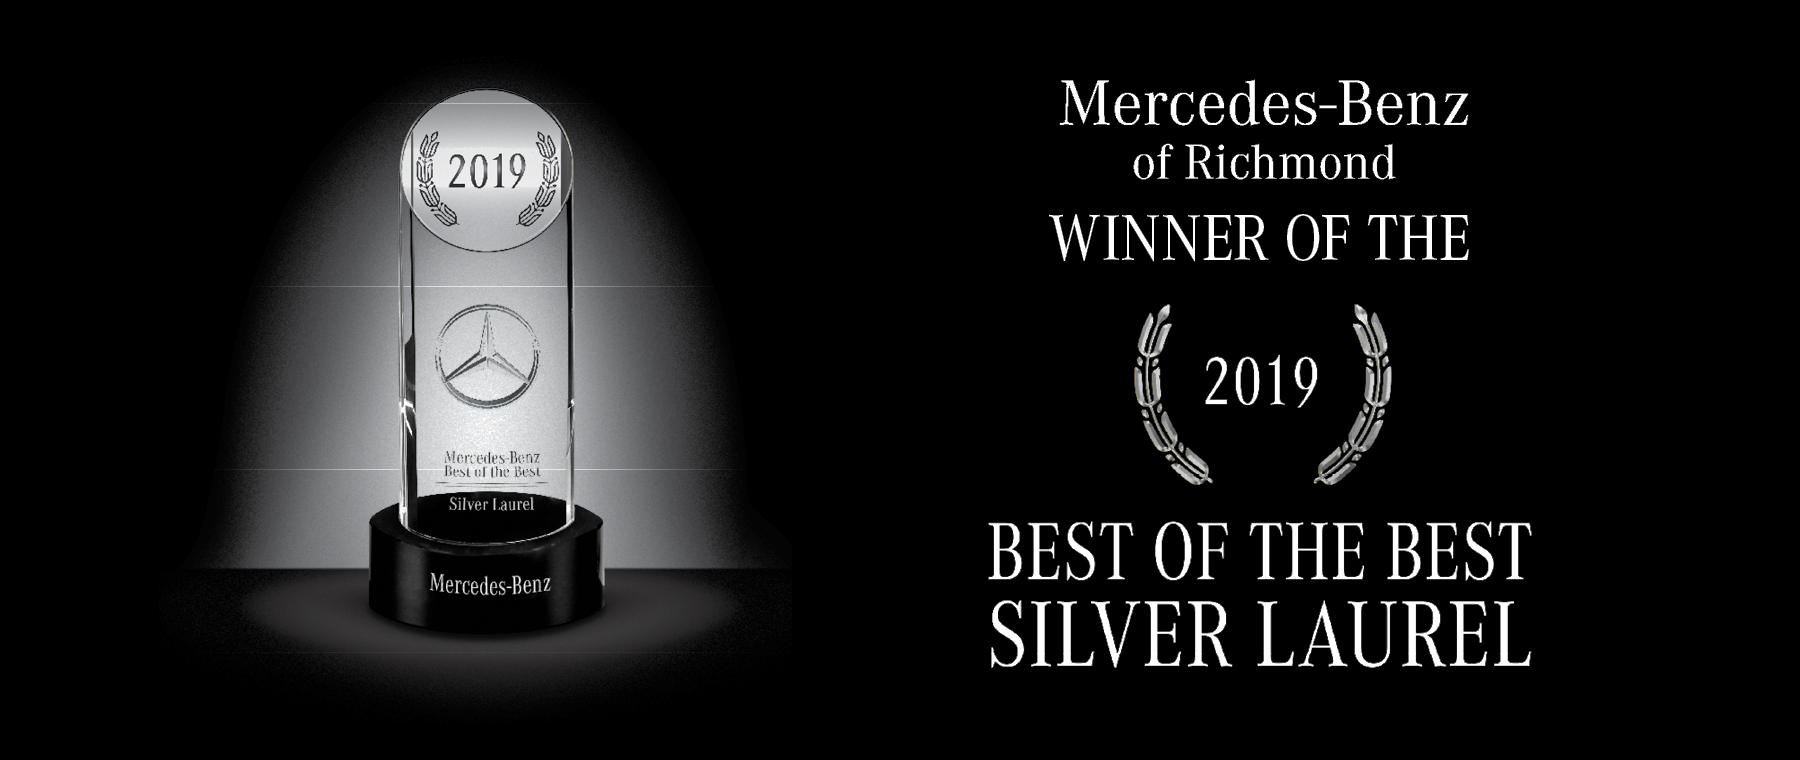 2019 best of the best silver laurel